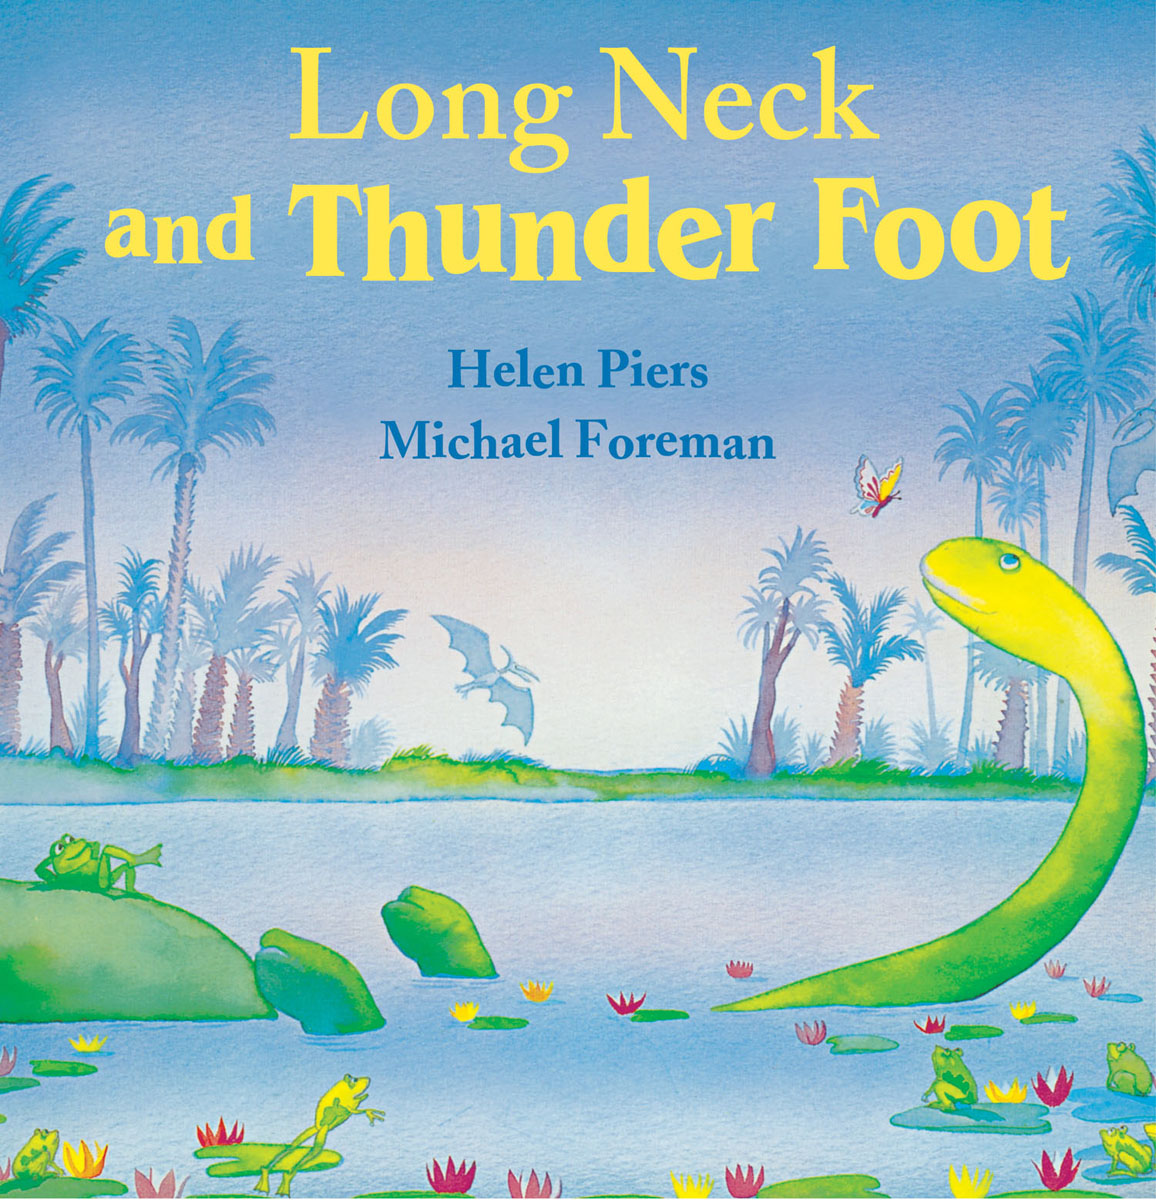 Long Neck and Thunder Foot suspicion